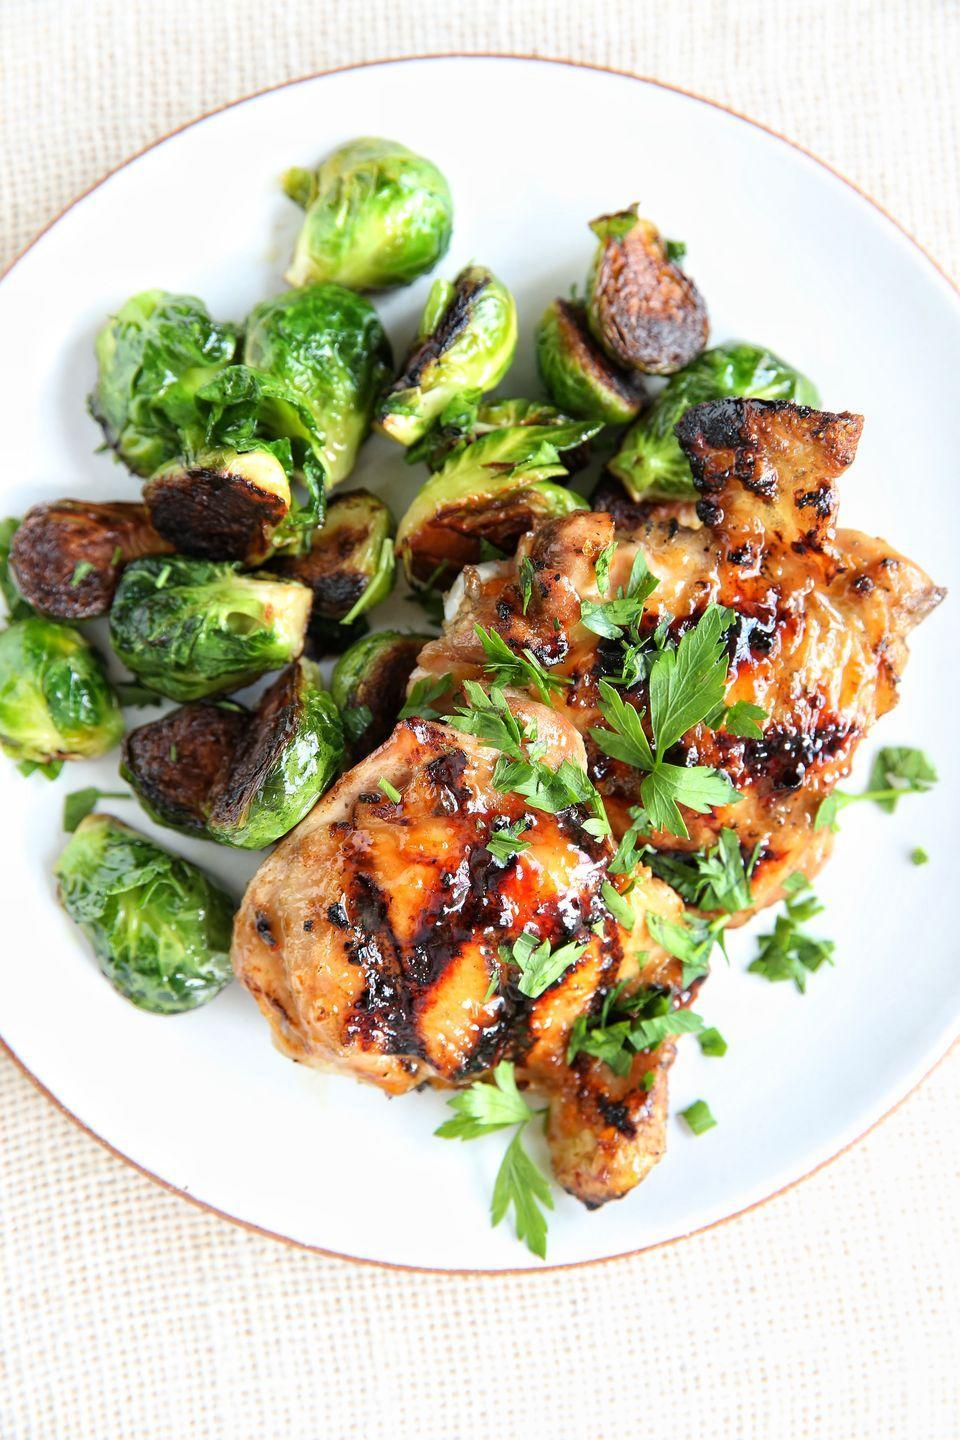 """<p>A little char goes a long way with these sticky-and-sweet chicken thighs and seared brussels sprouts.</p><p>Get the recipe from <a href=""""https://www.delish.com/cooking/recipe-ideas/recipes/a48418/apricot-glazed-chicken-with-brussels-sprouts-recipe/"""" rel=""""nofollow noopener"""" target=""""_blank"""" data-ylk=""""slk:Delish"""" class=""""link rapid-noclick-resp"""">Delish</a>.</p>"""